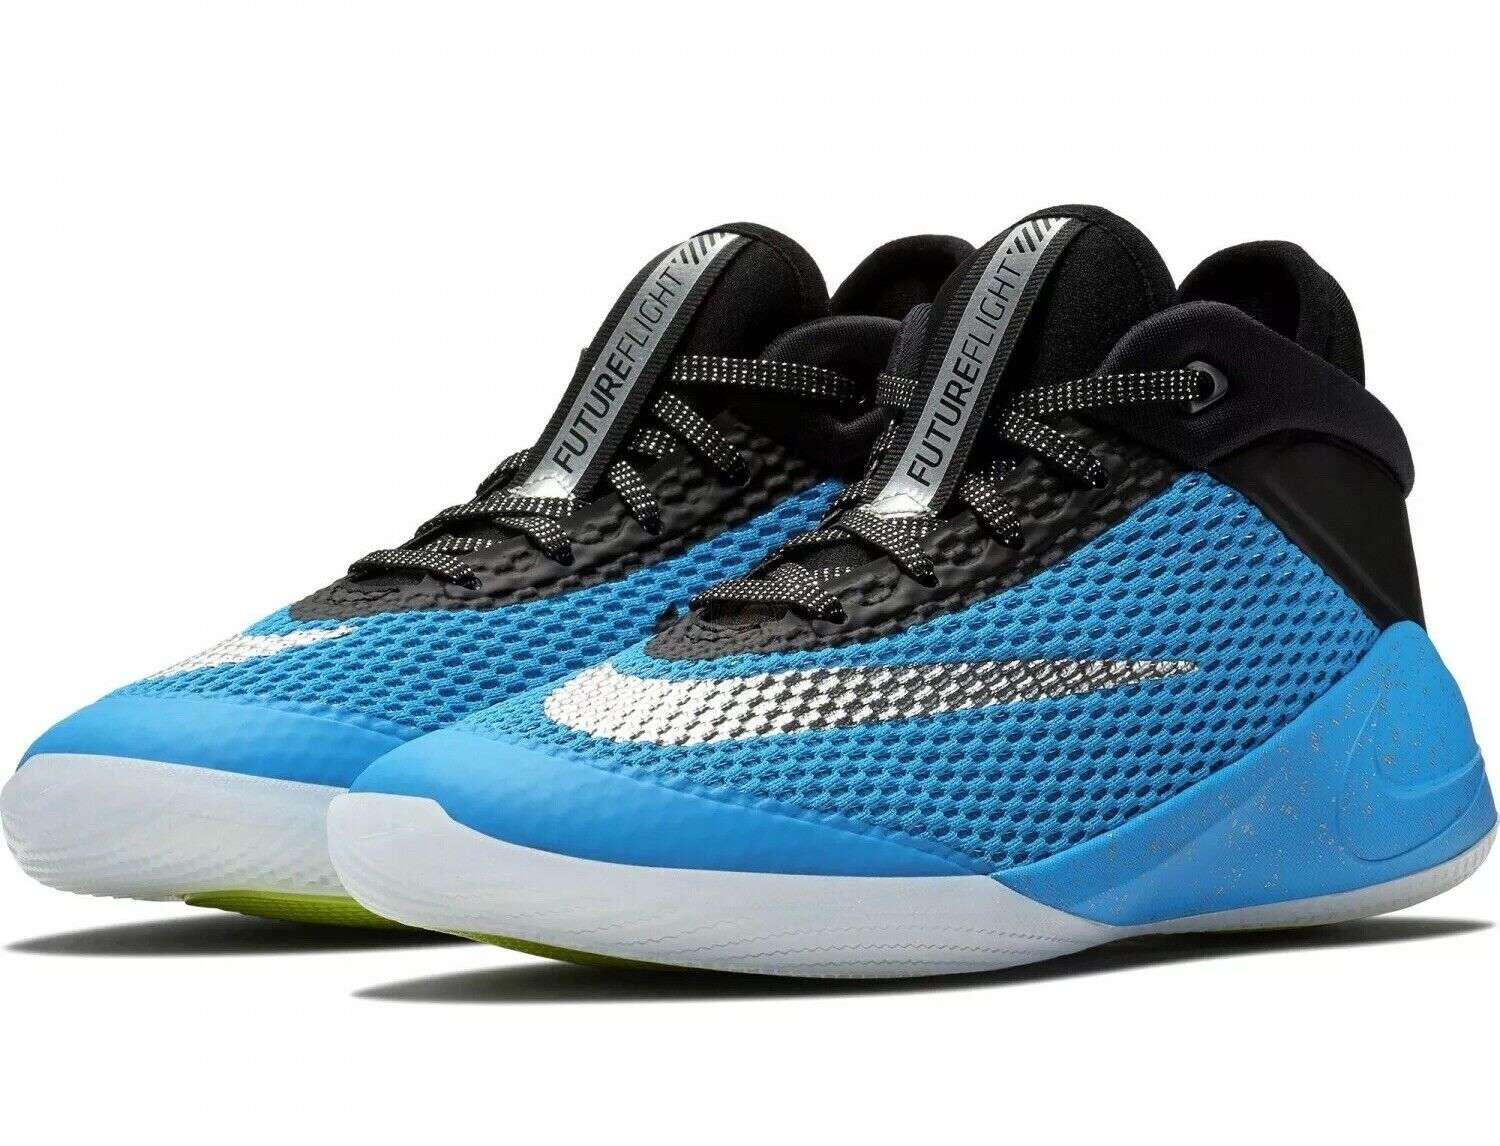 Nike Future Flumière (GS) YOUTH chaussures AH3430-400 Bleu Taille UK 6 EU 39 US 6.5Y NEUF